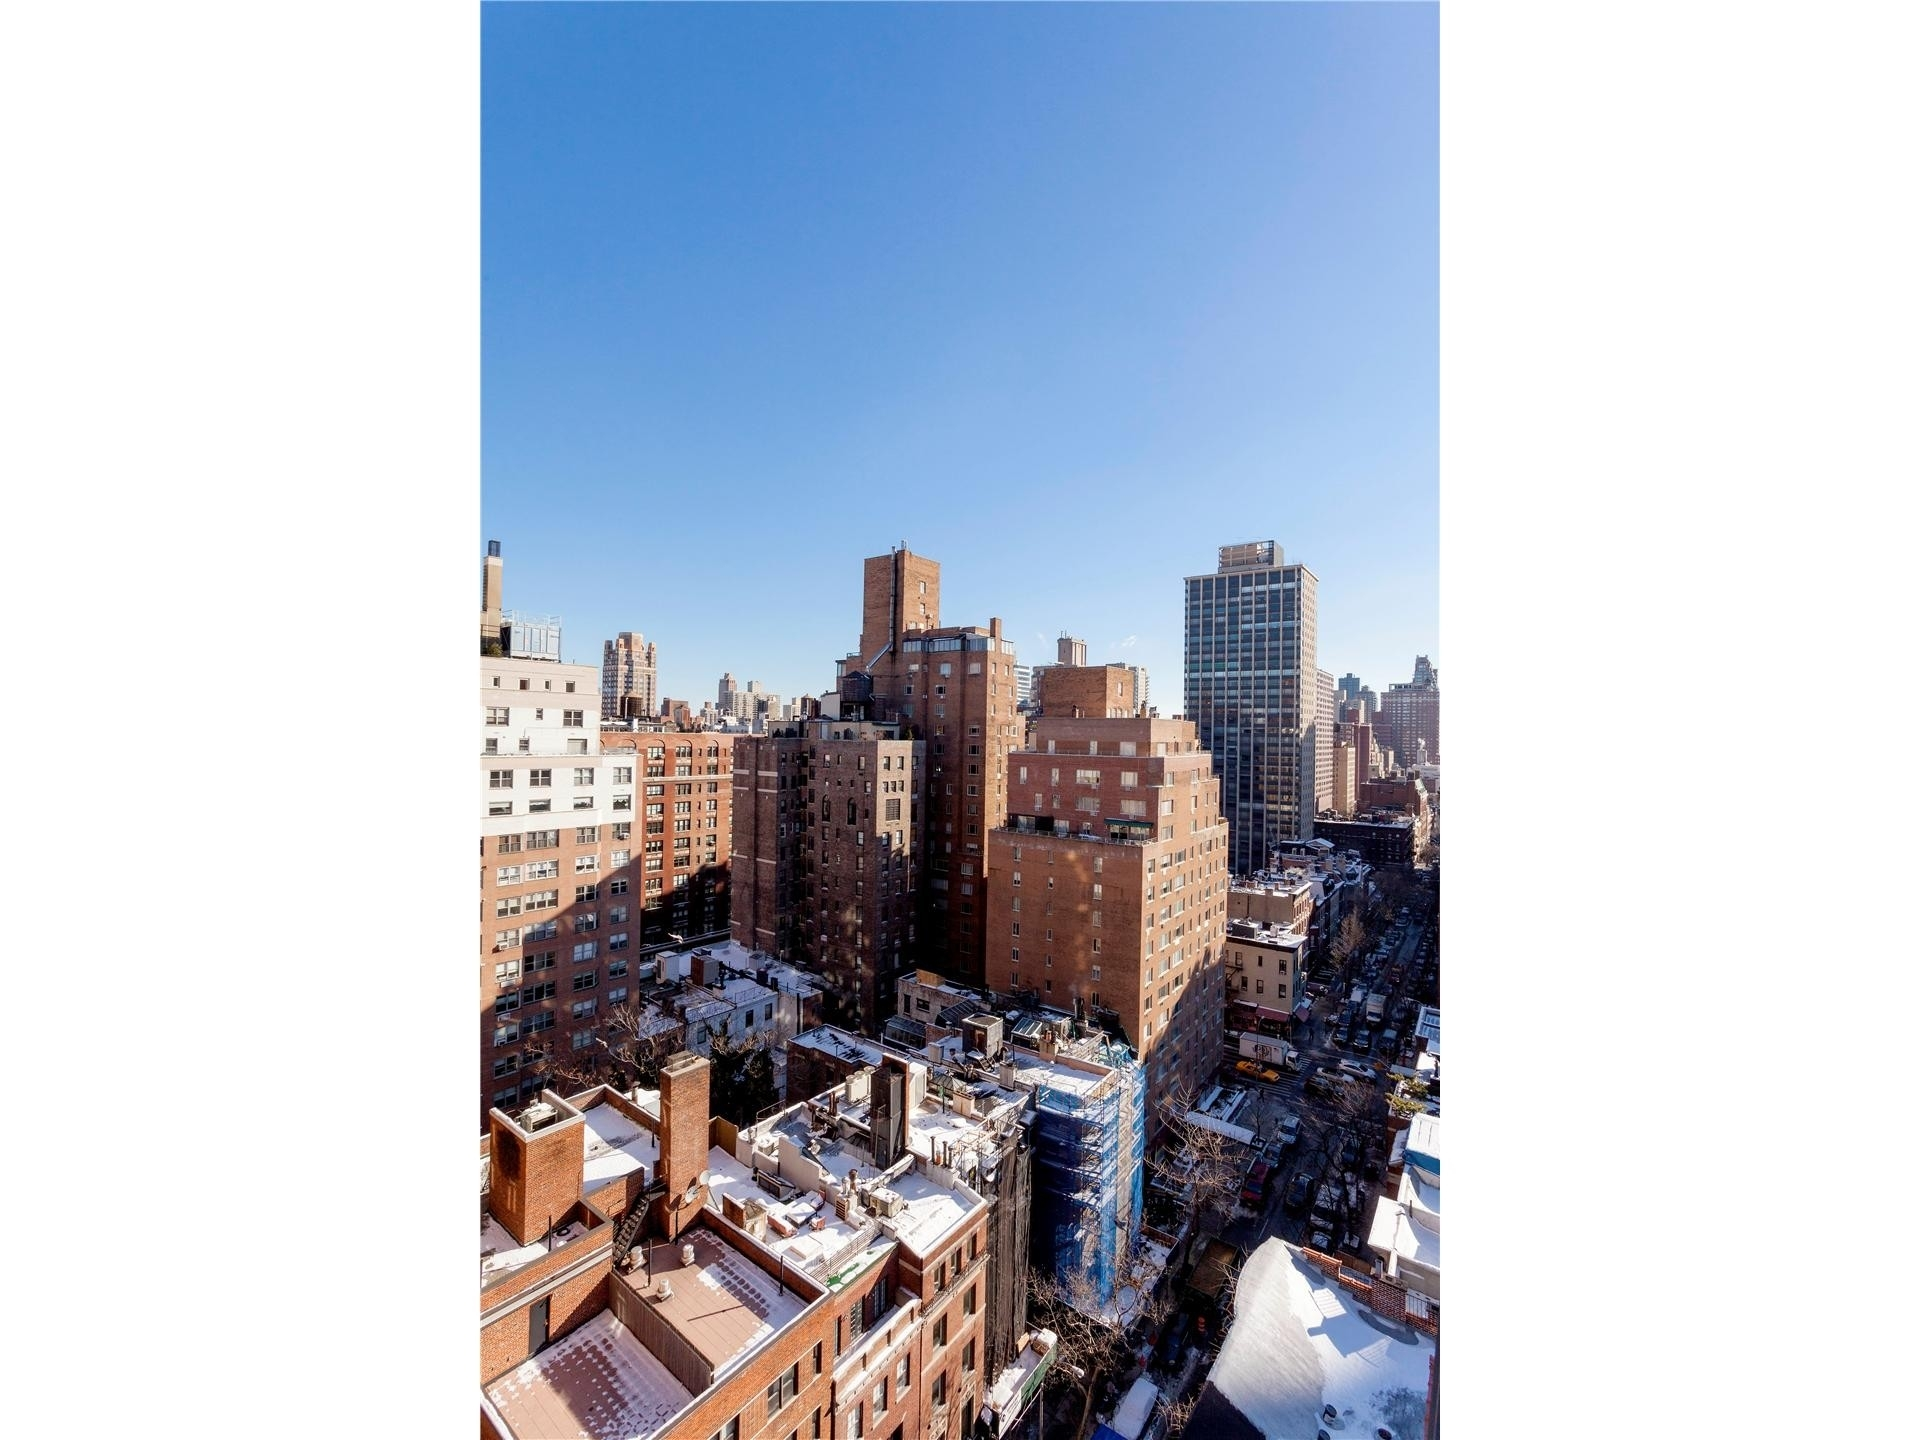 6. Tower Viscaya edificio en 110 East 71st St, Lenox Hill, New York, NY